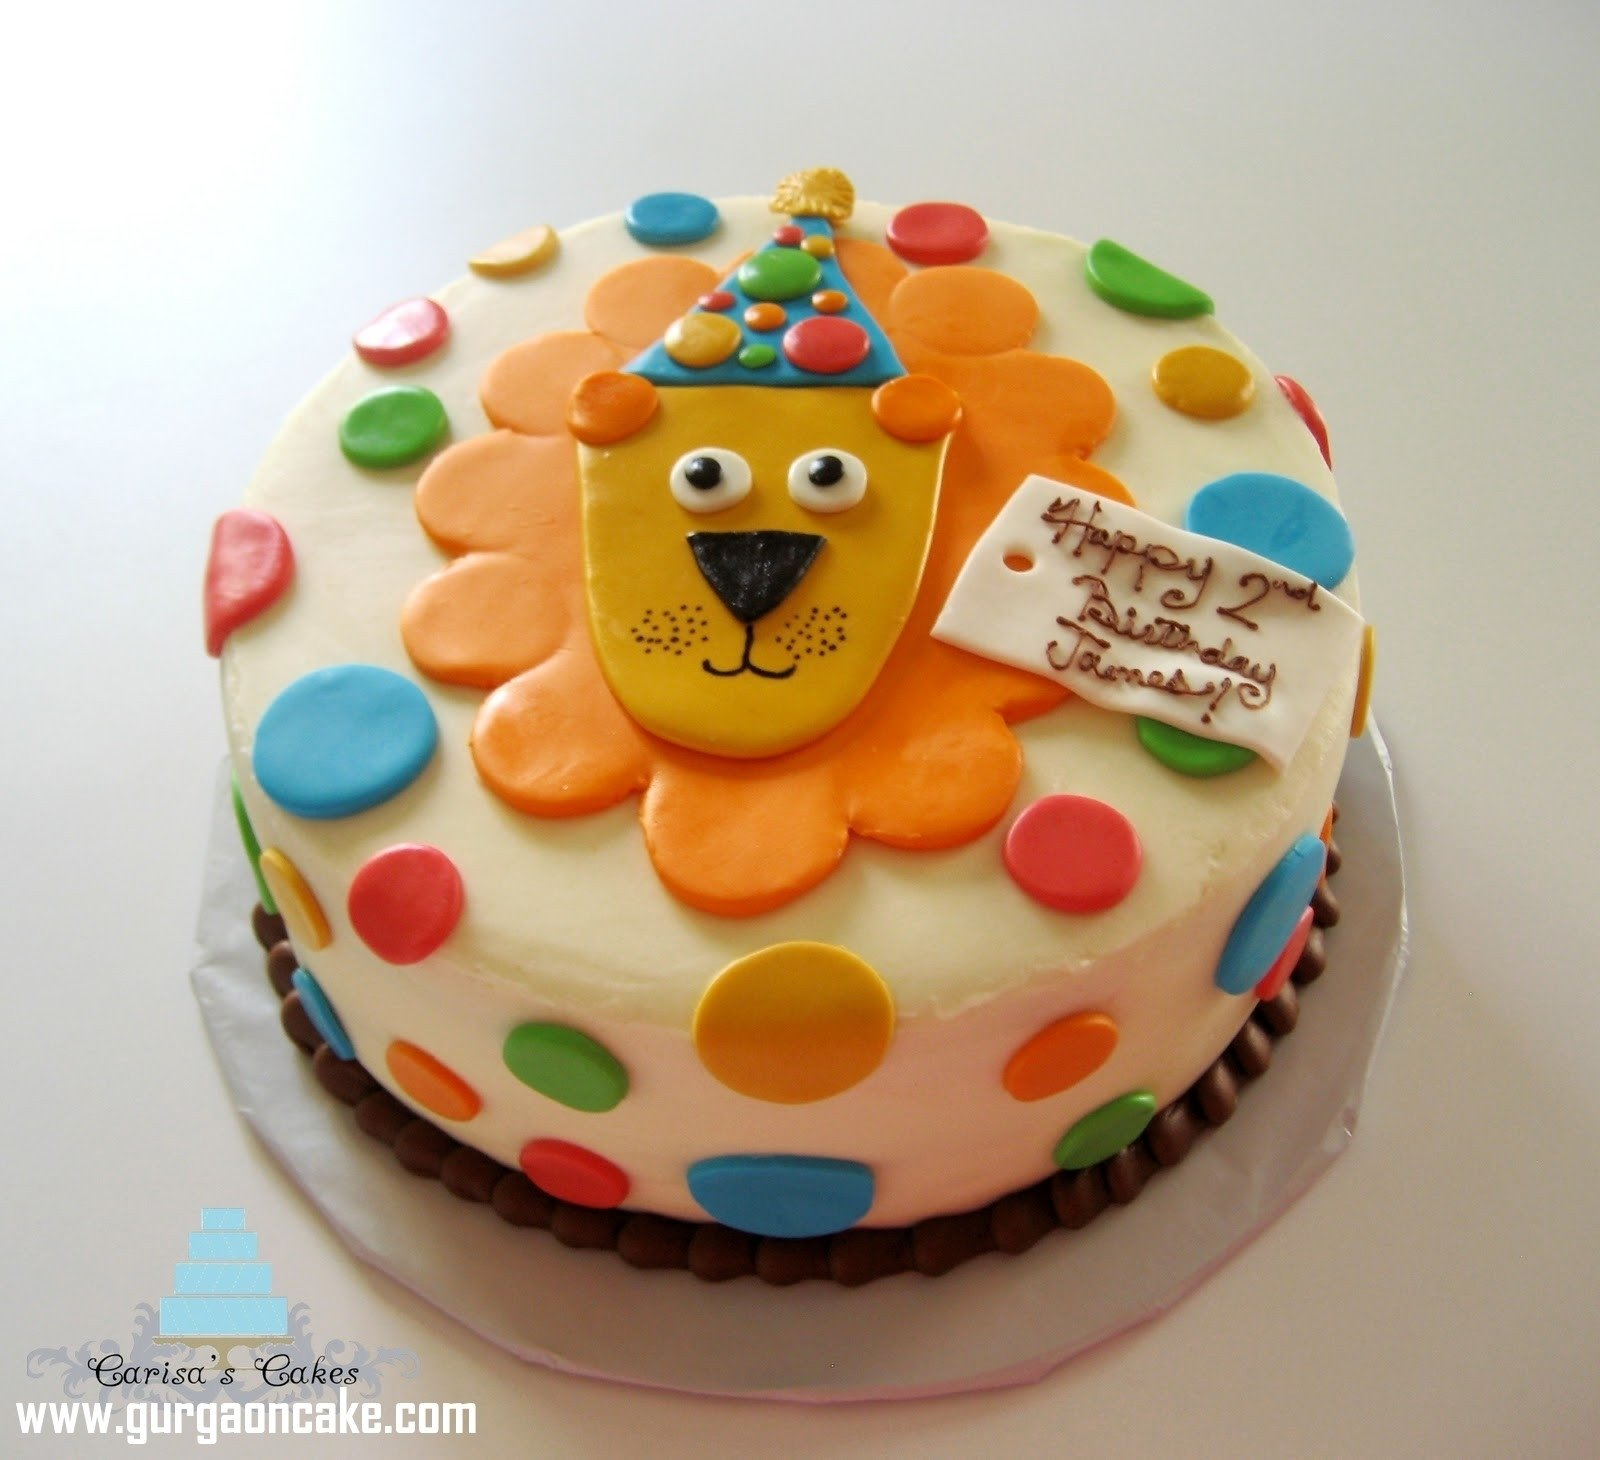 10 Amazing 2 Year Old Birthday Cake Ideas For Ba Boy With